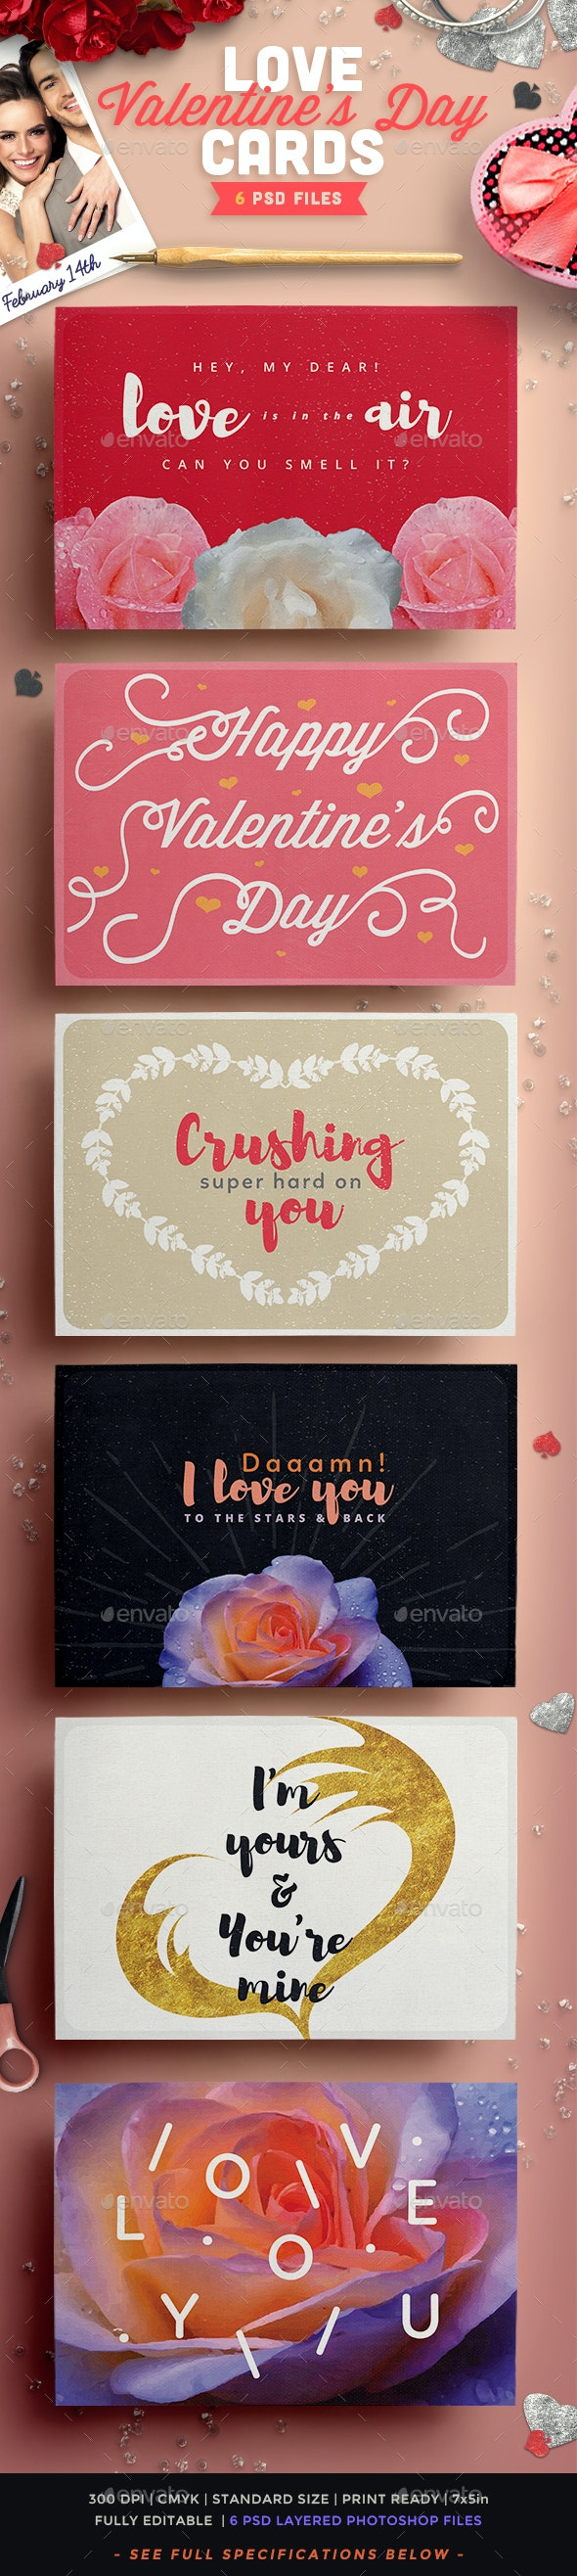 Valentine's Day Love Cards Pack II - Greeting Cards Cards & Invites